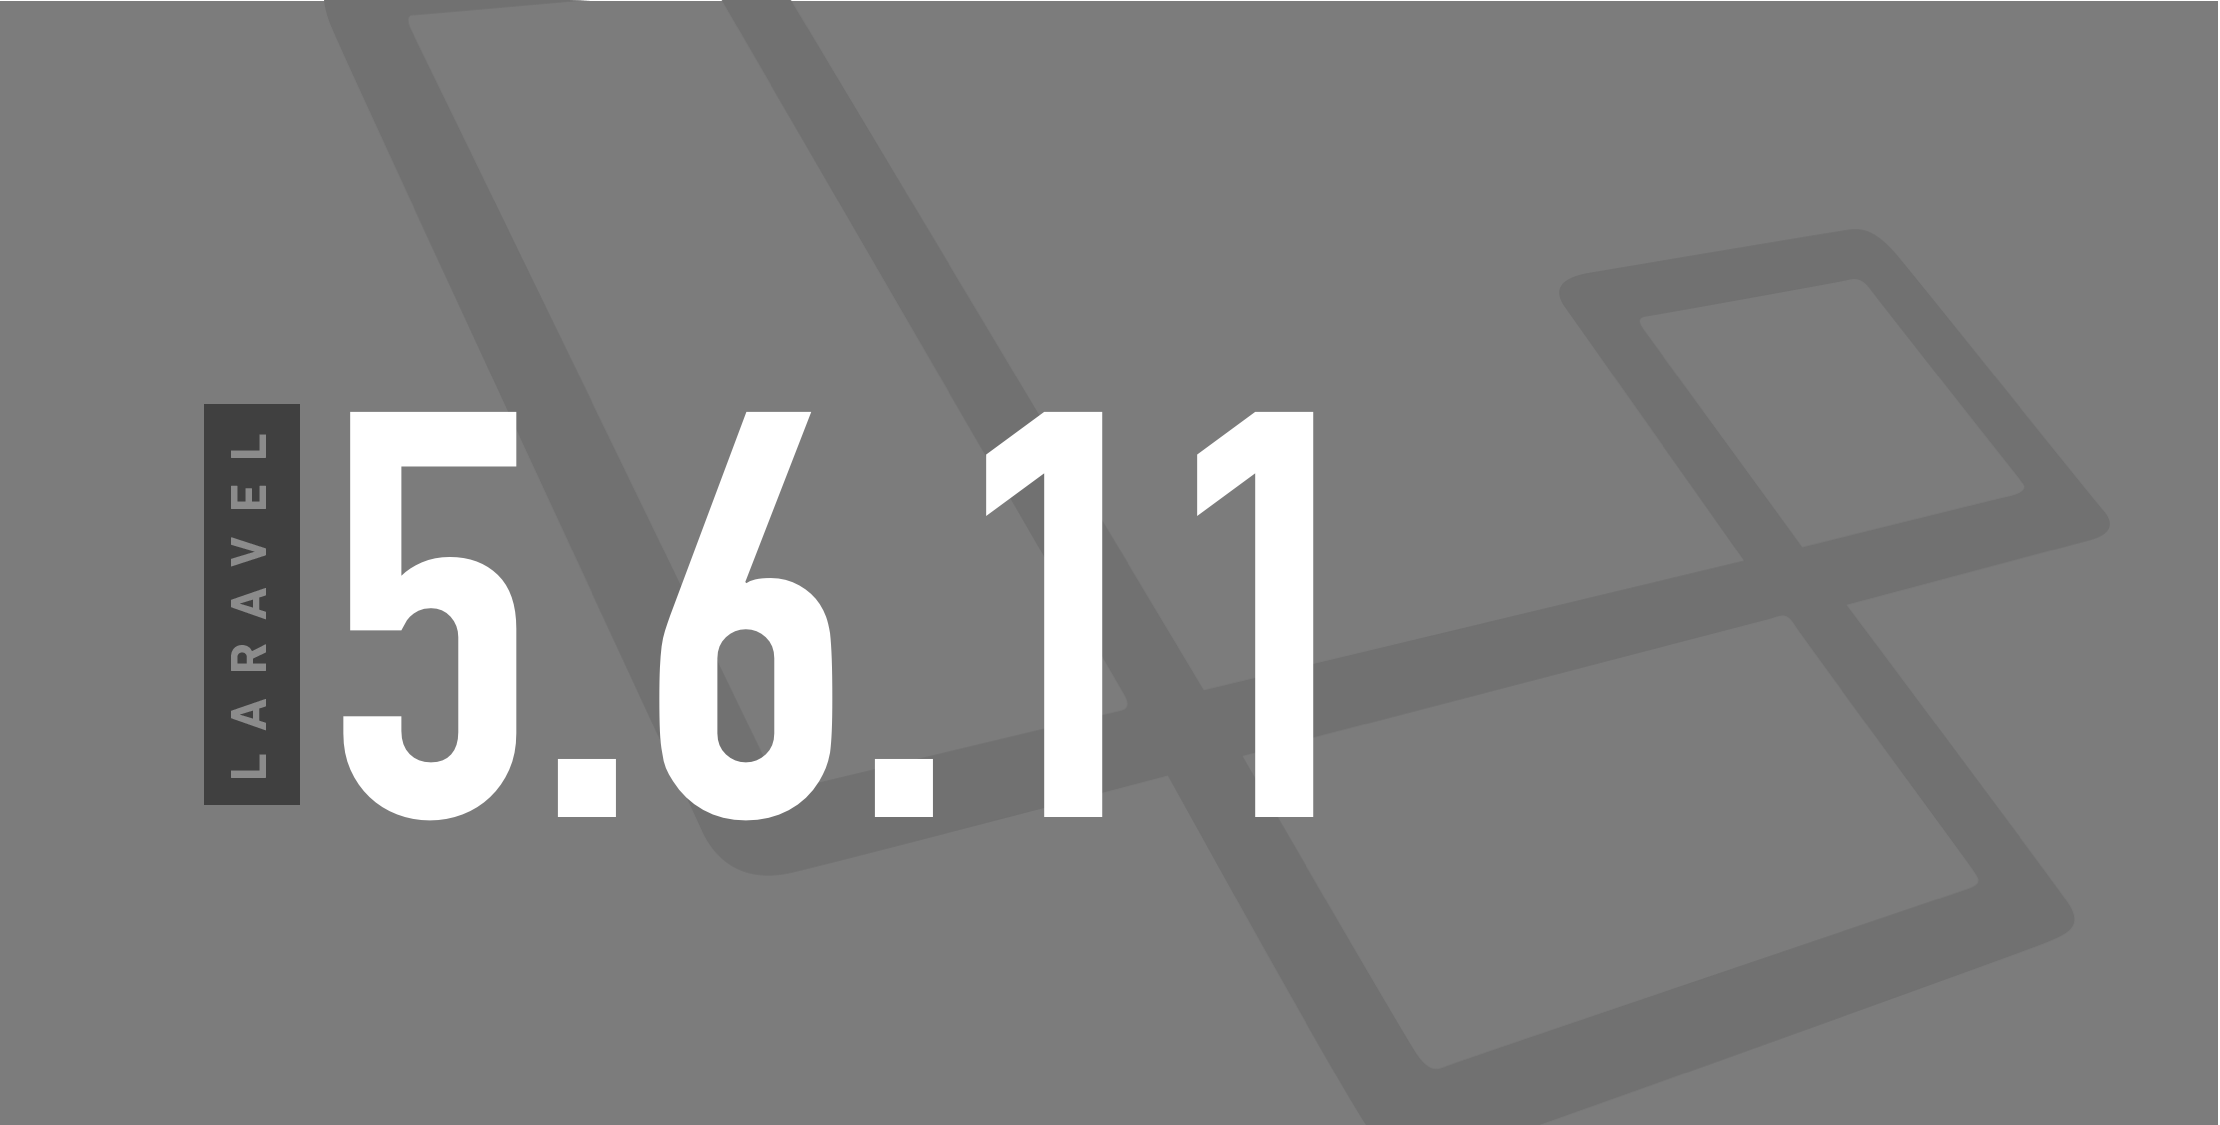 laravel-5.6.11-featured.png